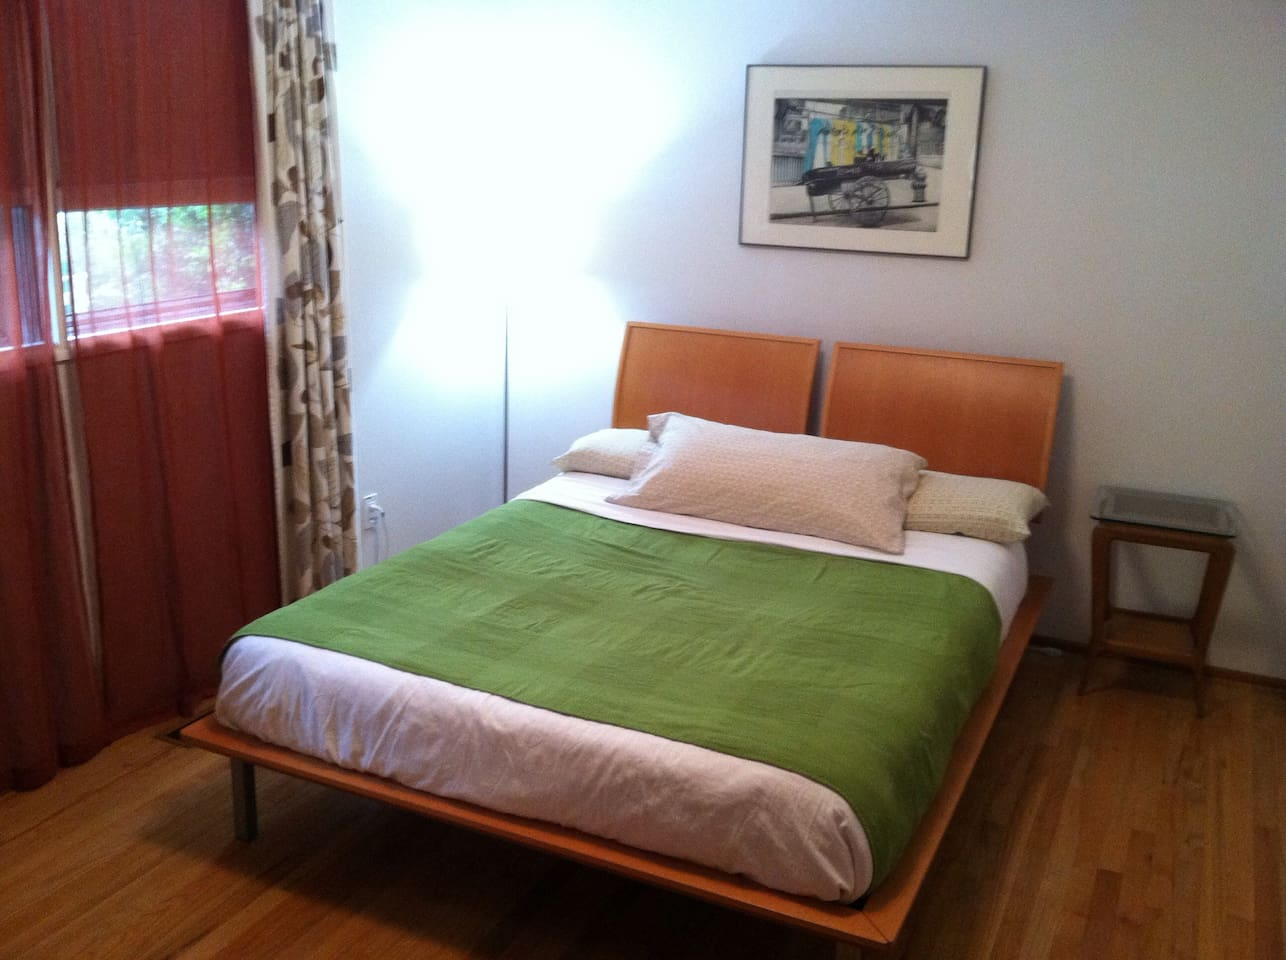 Queen size bed with memory foam mattress. Very clean and comfortably sleeps two guests.